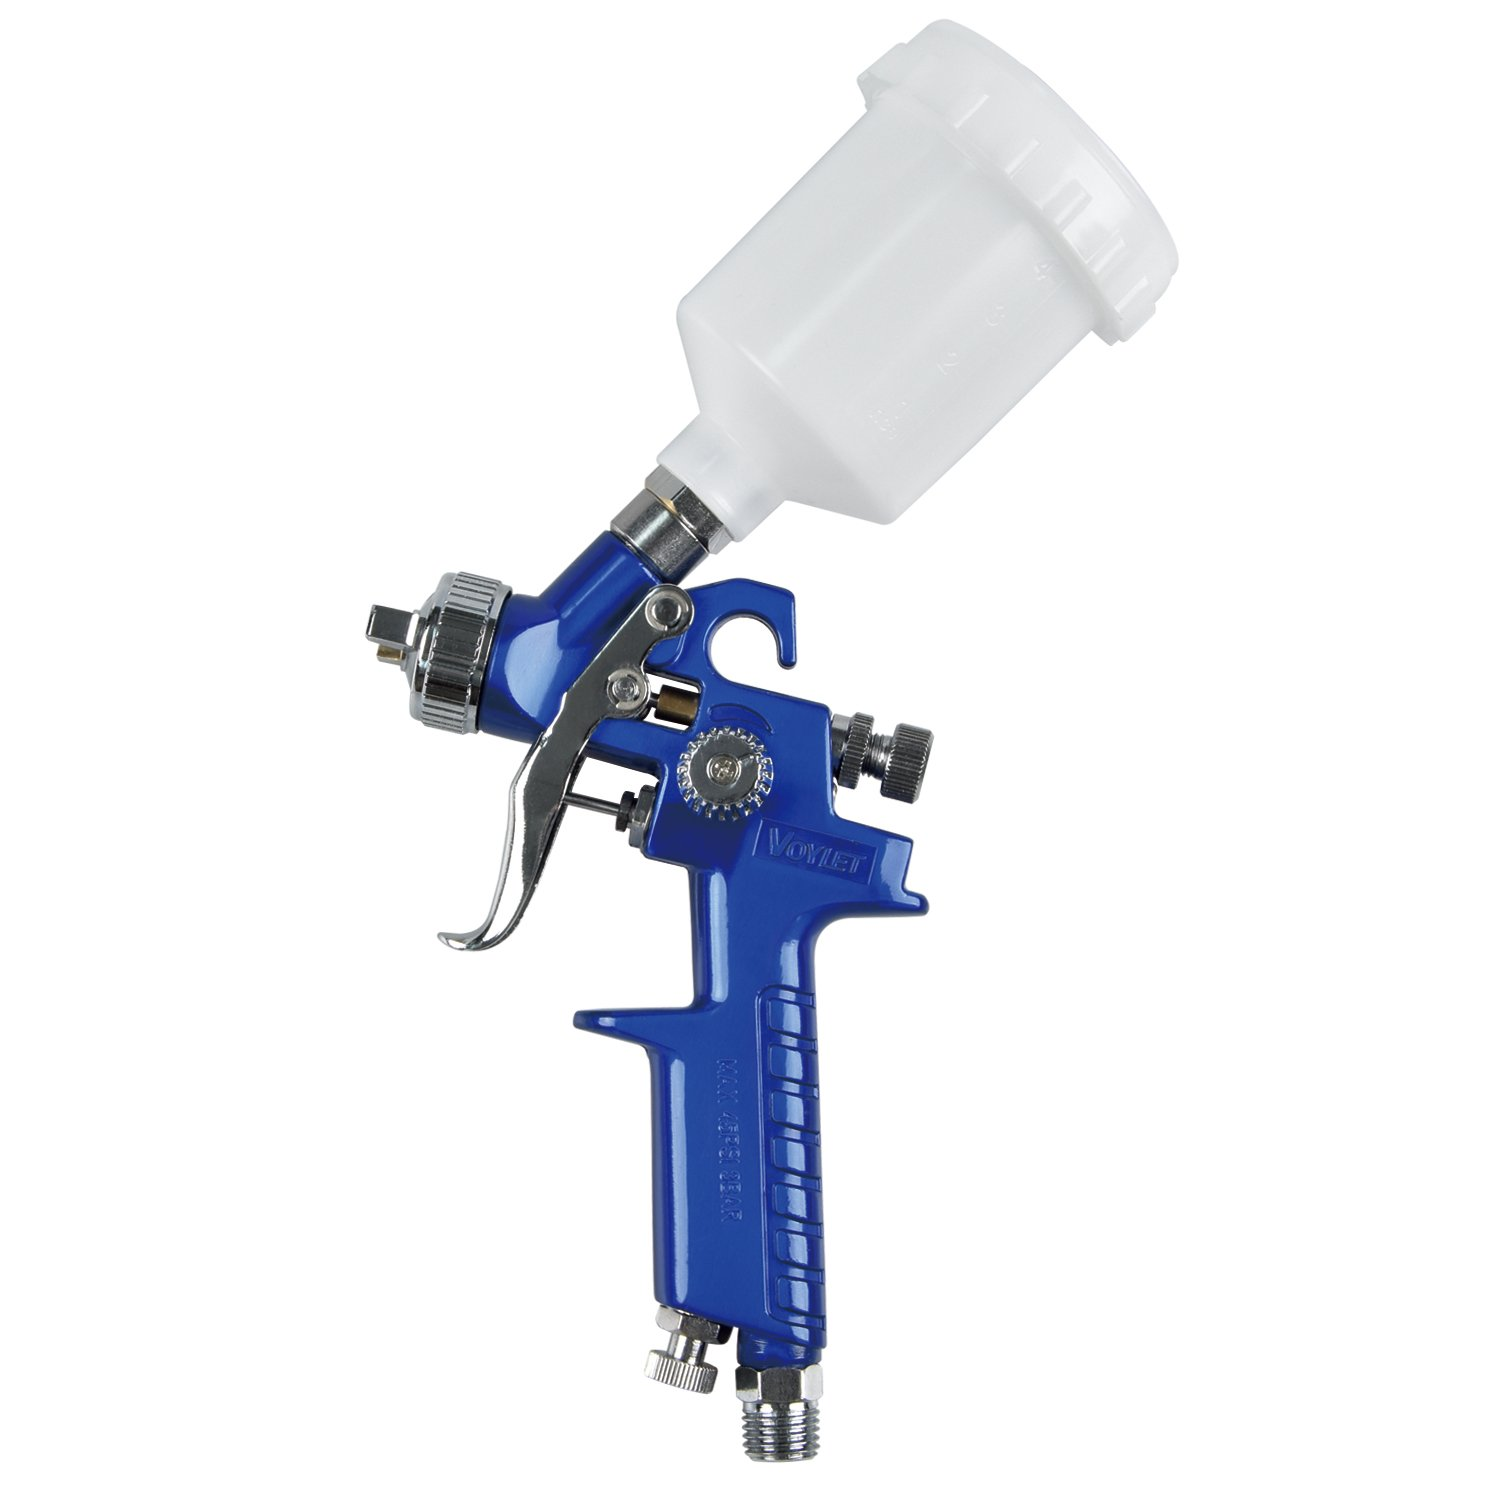 VOYLET HVLP Mini Gravity Feed Air Spray Gun - Pattern & Fluid Control Handheld Sprayer - Pneumatic Painter 1.0 mm Nozzle 4.2 oz POM Cup by VOYLET (Image #7)